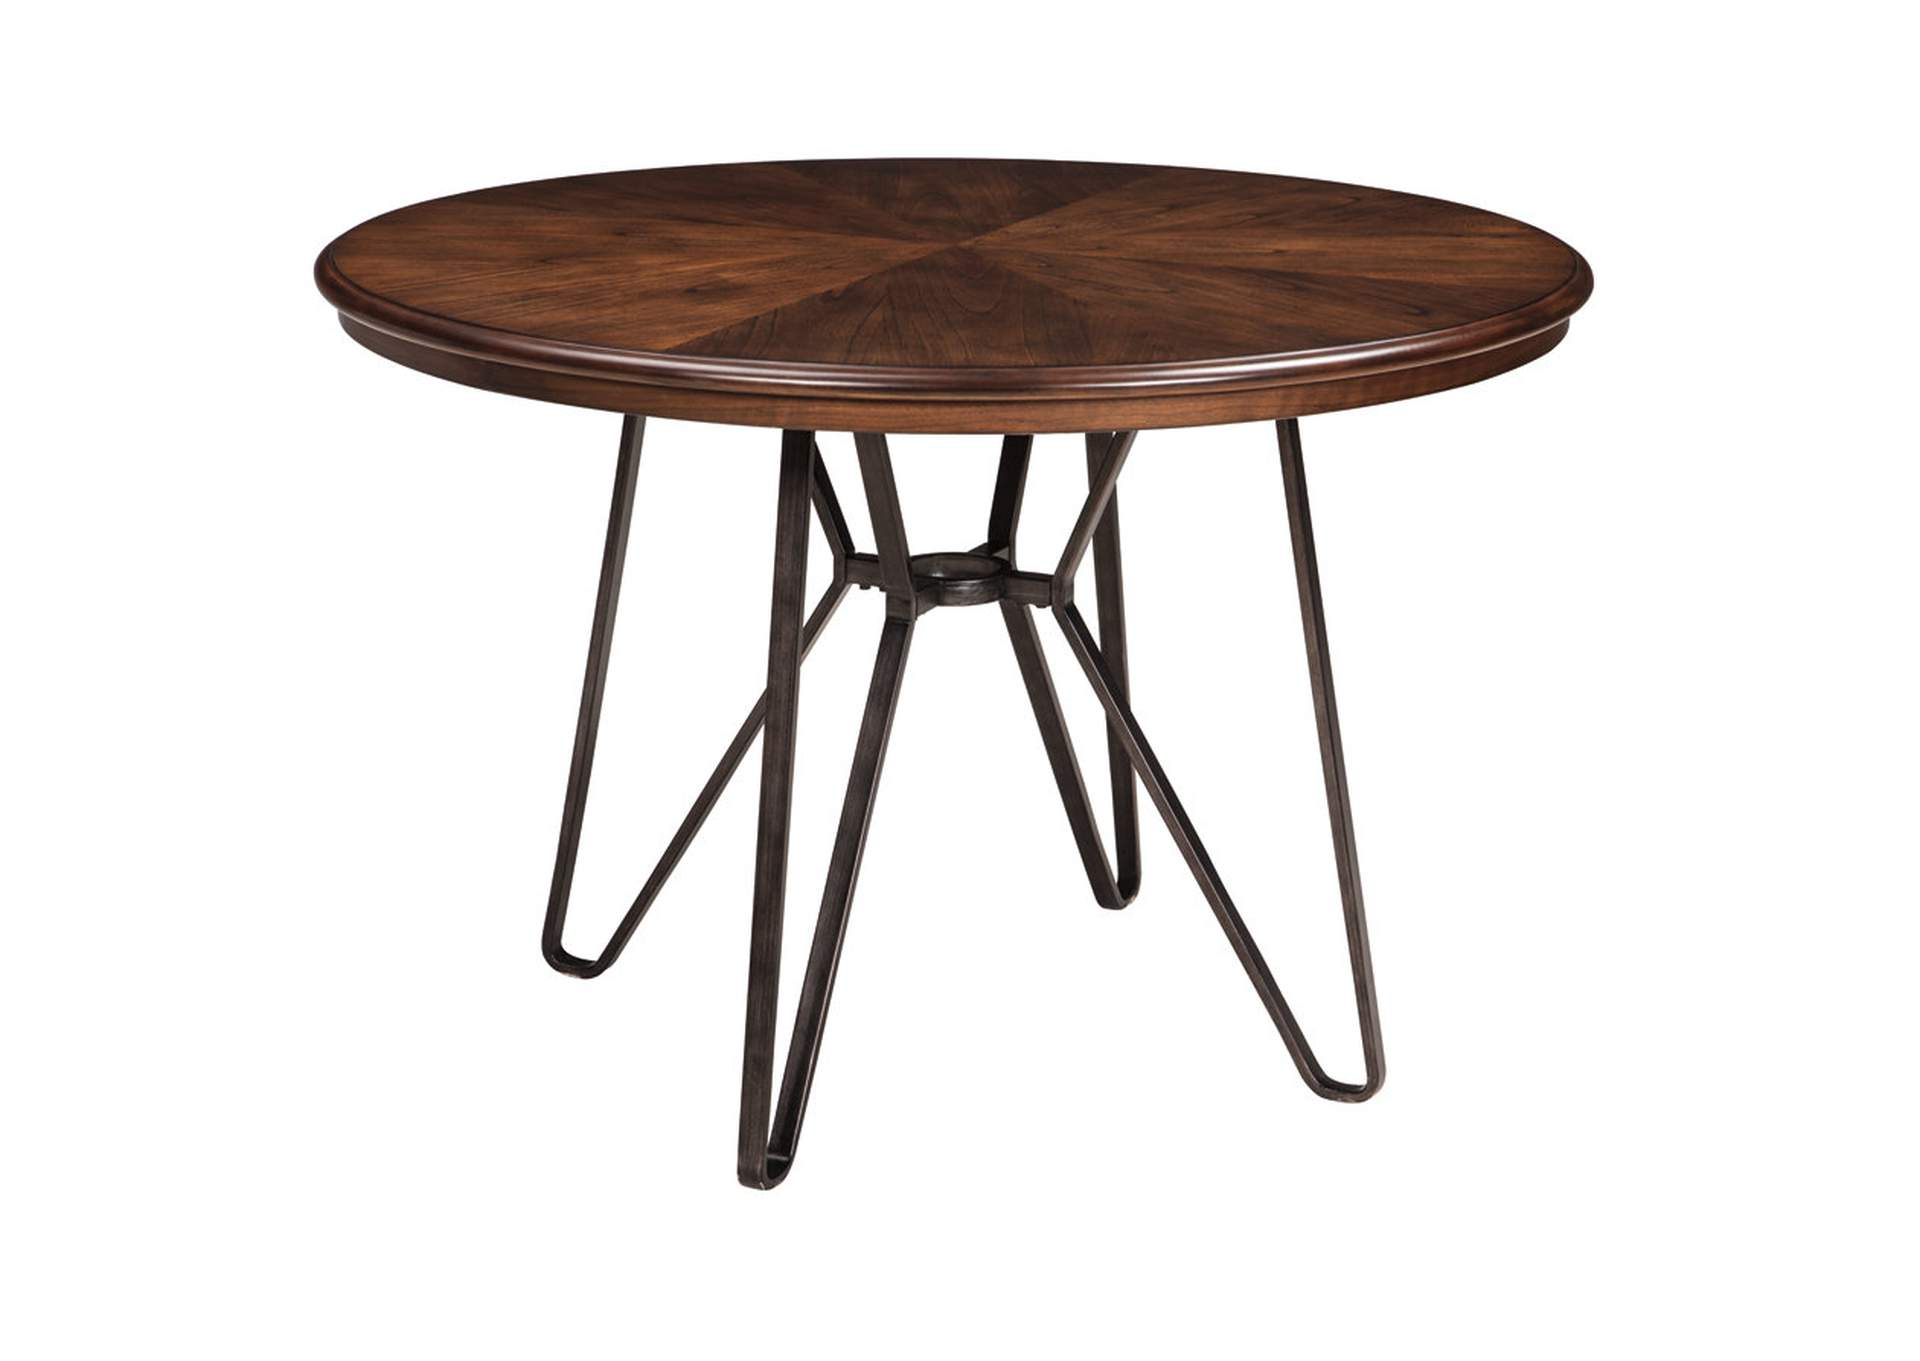 Centiar Two-Tone Brown Round Dining Room Table,Signature Design By Ashley